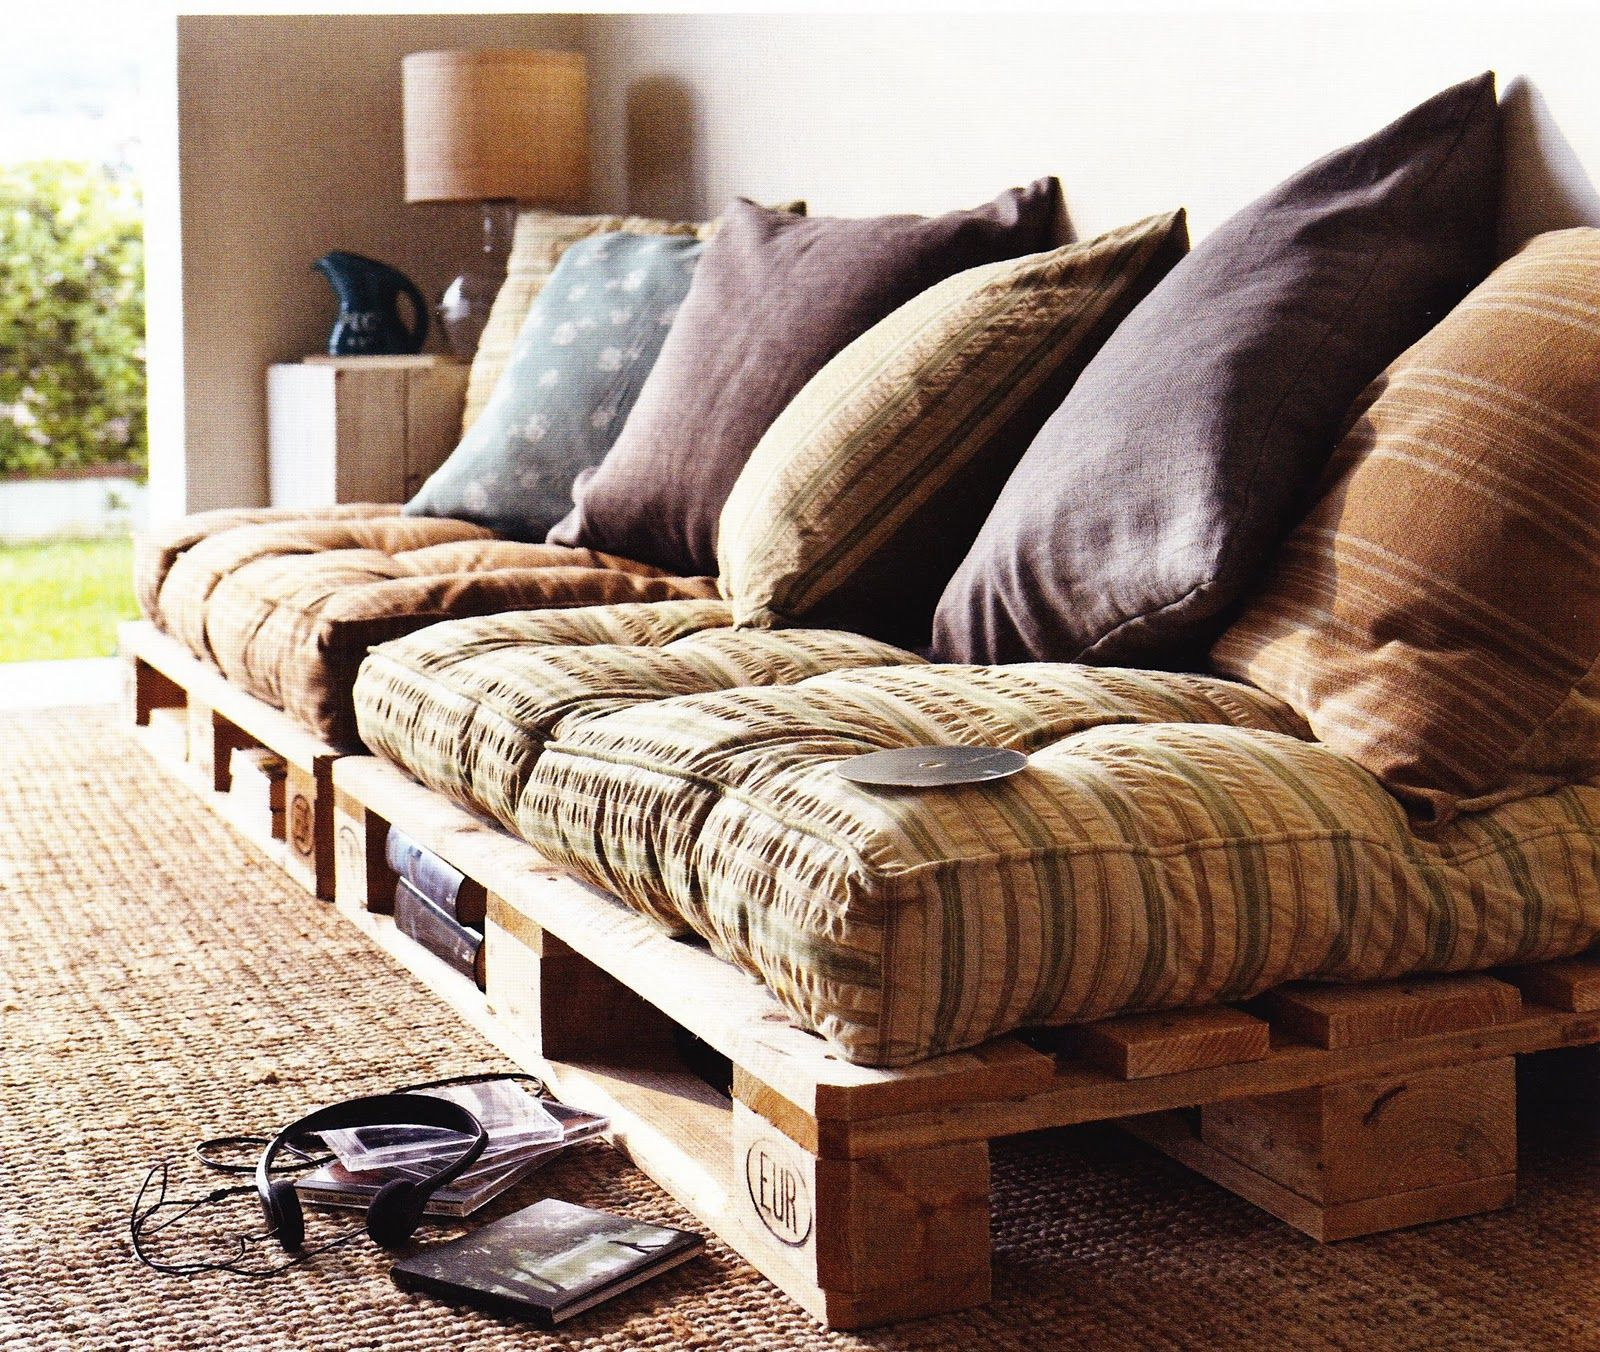 French By Design Trend Alert Recycling Wood Crates And Pallets